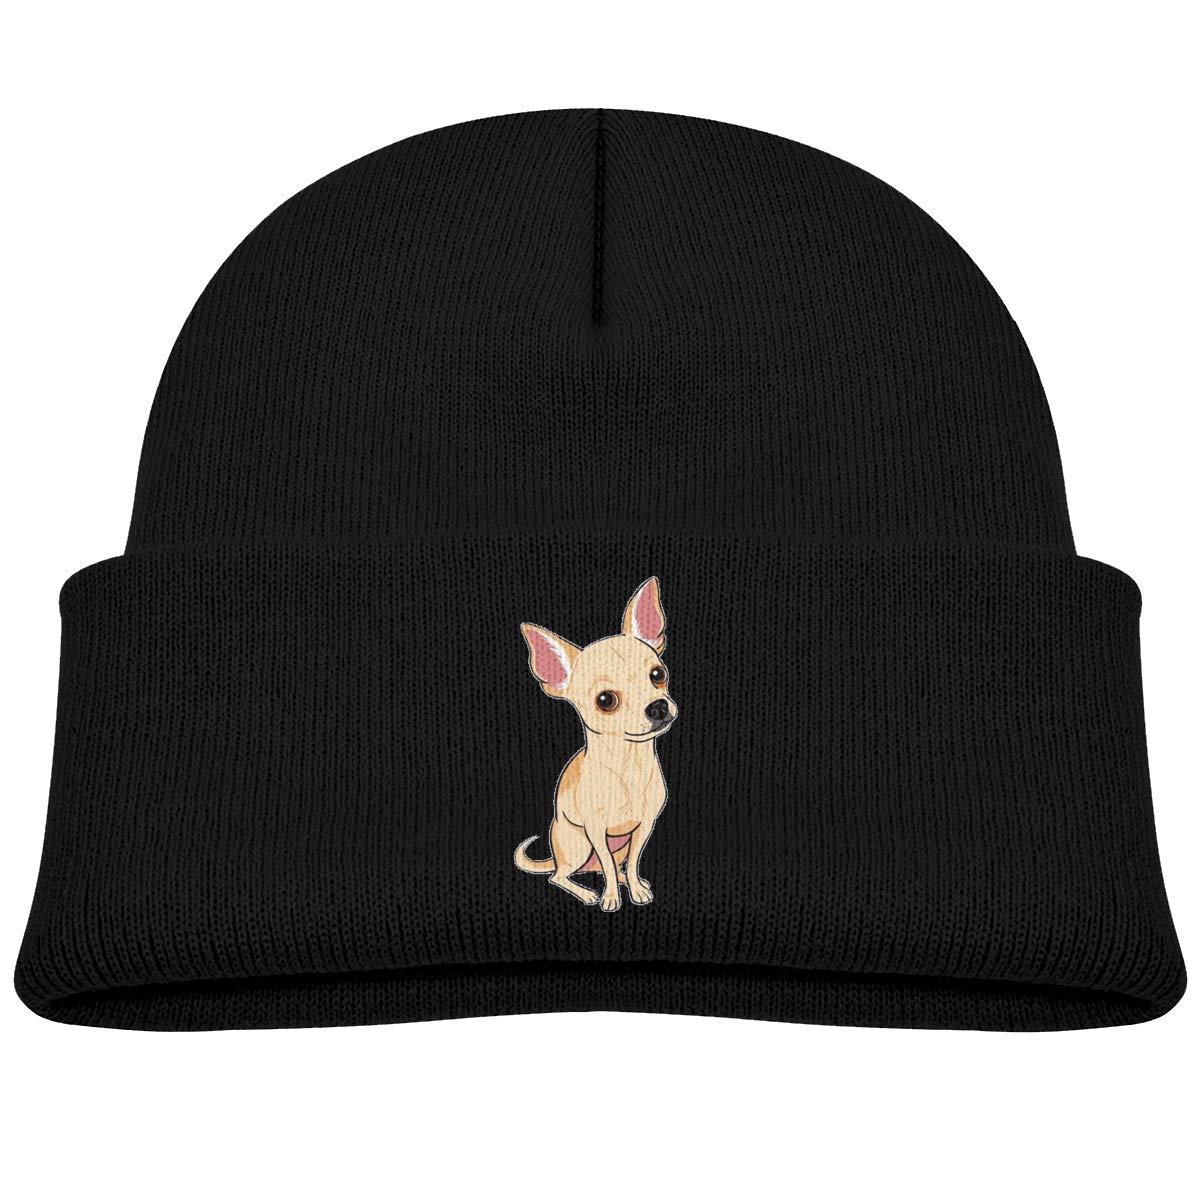 Amazon.com  Banana King Chihuahua Dog Baby Beanie Hat Toddler Winter Warm  Knit Woolen Watch Cap for Kids  Clothing 00fb232aeee